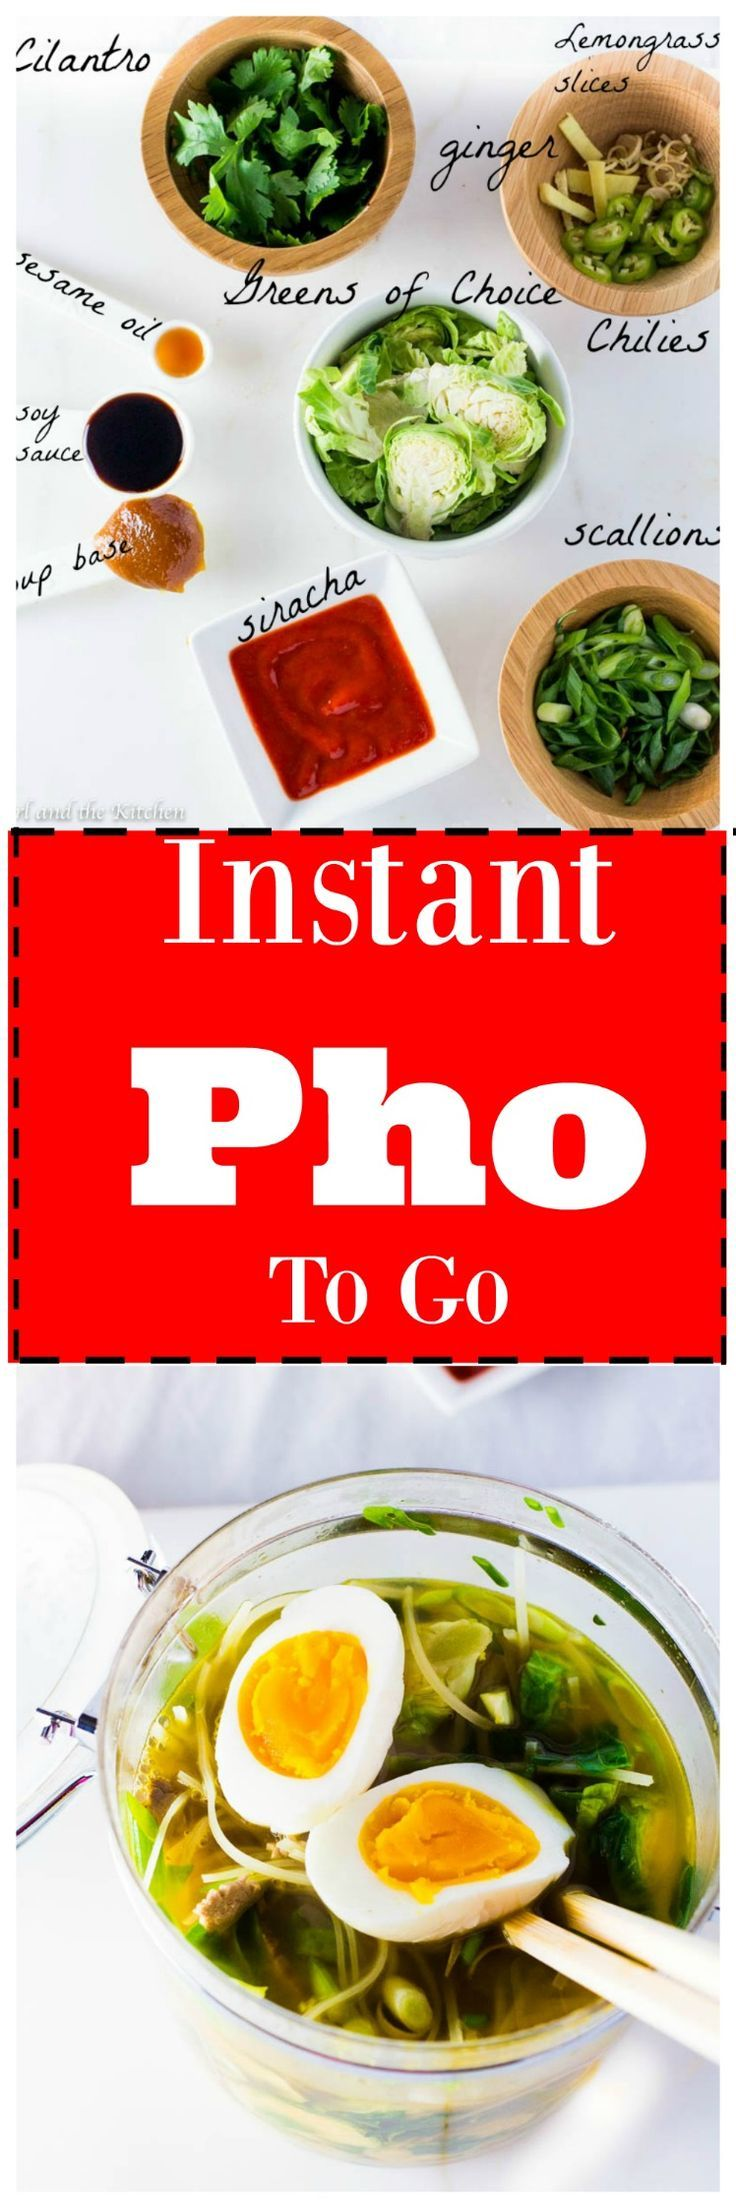 Lunch is never a bore or a hassle with my incredible and simple Instant Pho to Go!  The ingredients are never boring, always delicious and never-ending!  Create vegetarian, vegan and meat lover options with my super simple formula!!!